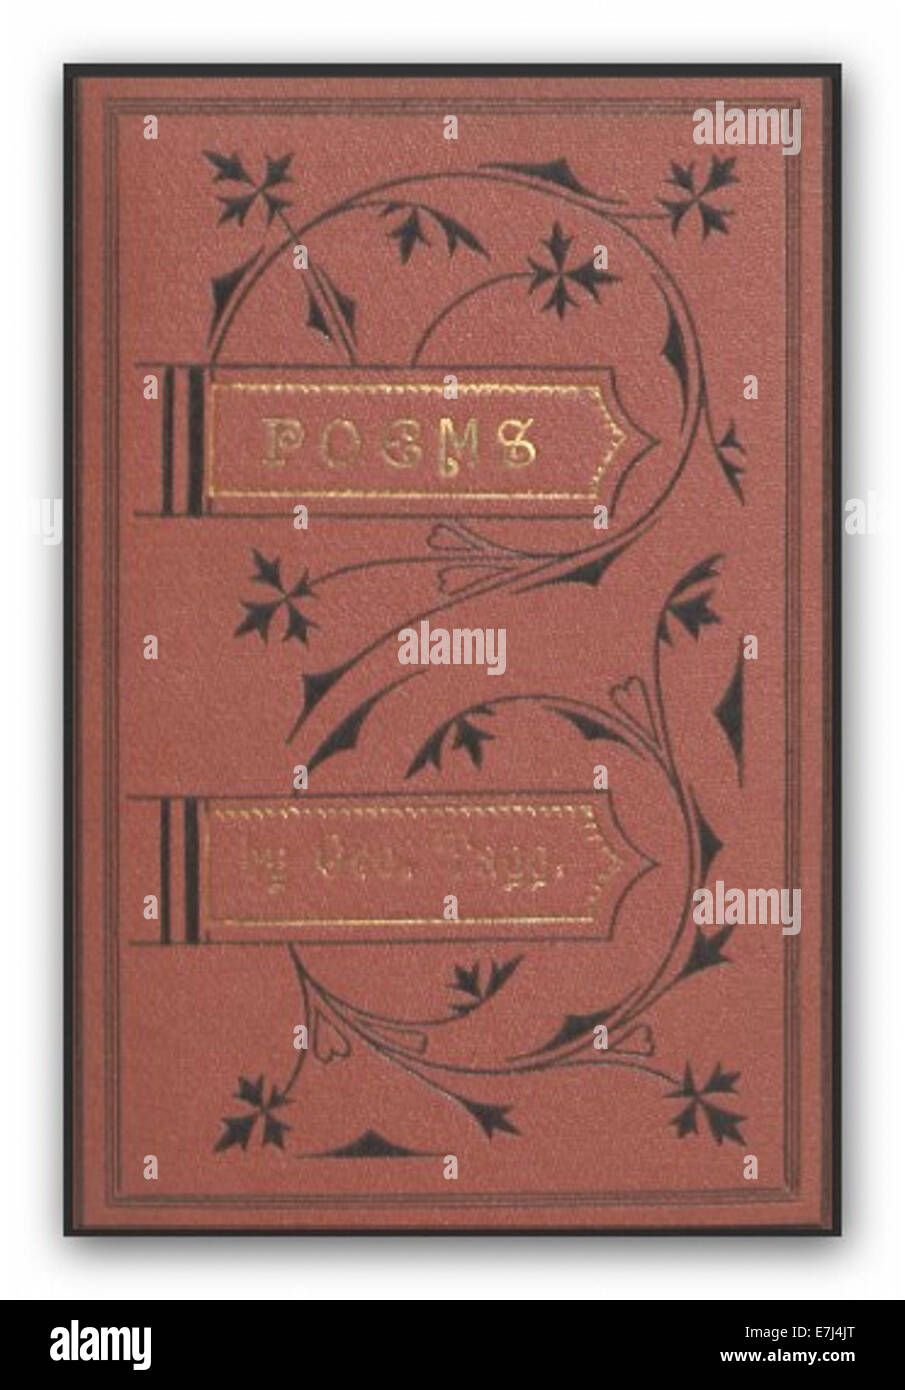 TAGG(1874) Poems Stock Photo